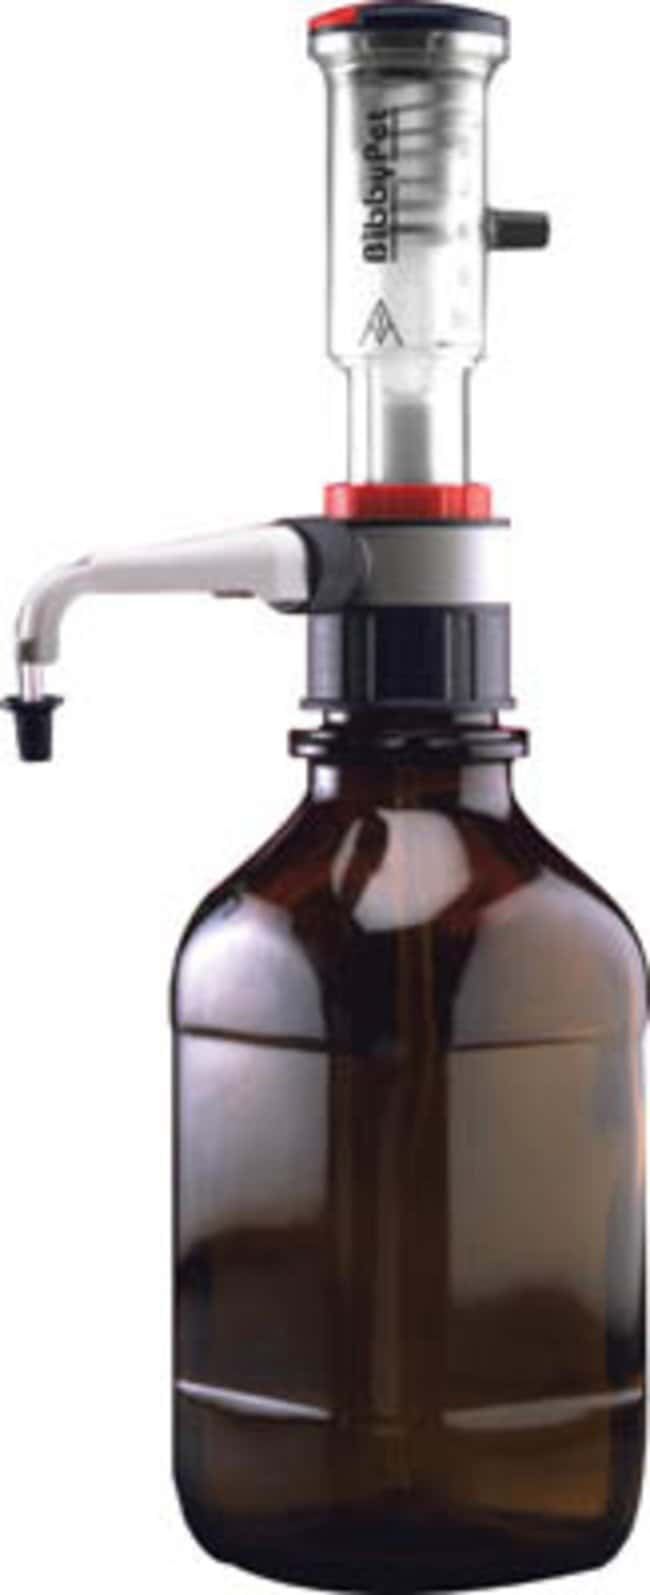 Cole-Parmer™Stuart™ Polypropylene Bottle Top Dispenser For Use With: Closing aqueous solutions, alkalis, dilute acids and polar solvents such as ethanol or acetone Cole-Parmer™Stuart™ Polypropylene Bottle Top Dispenser